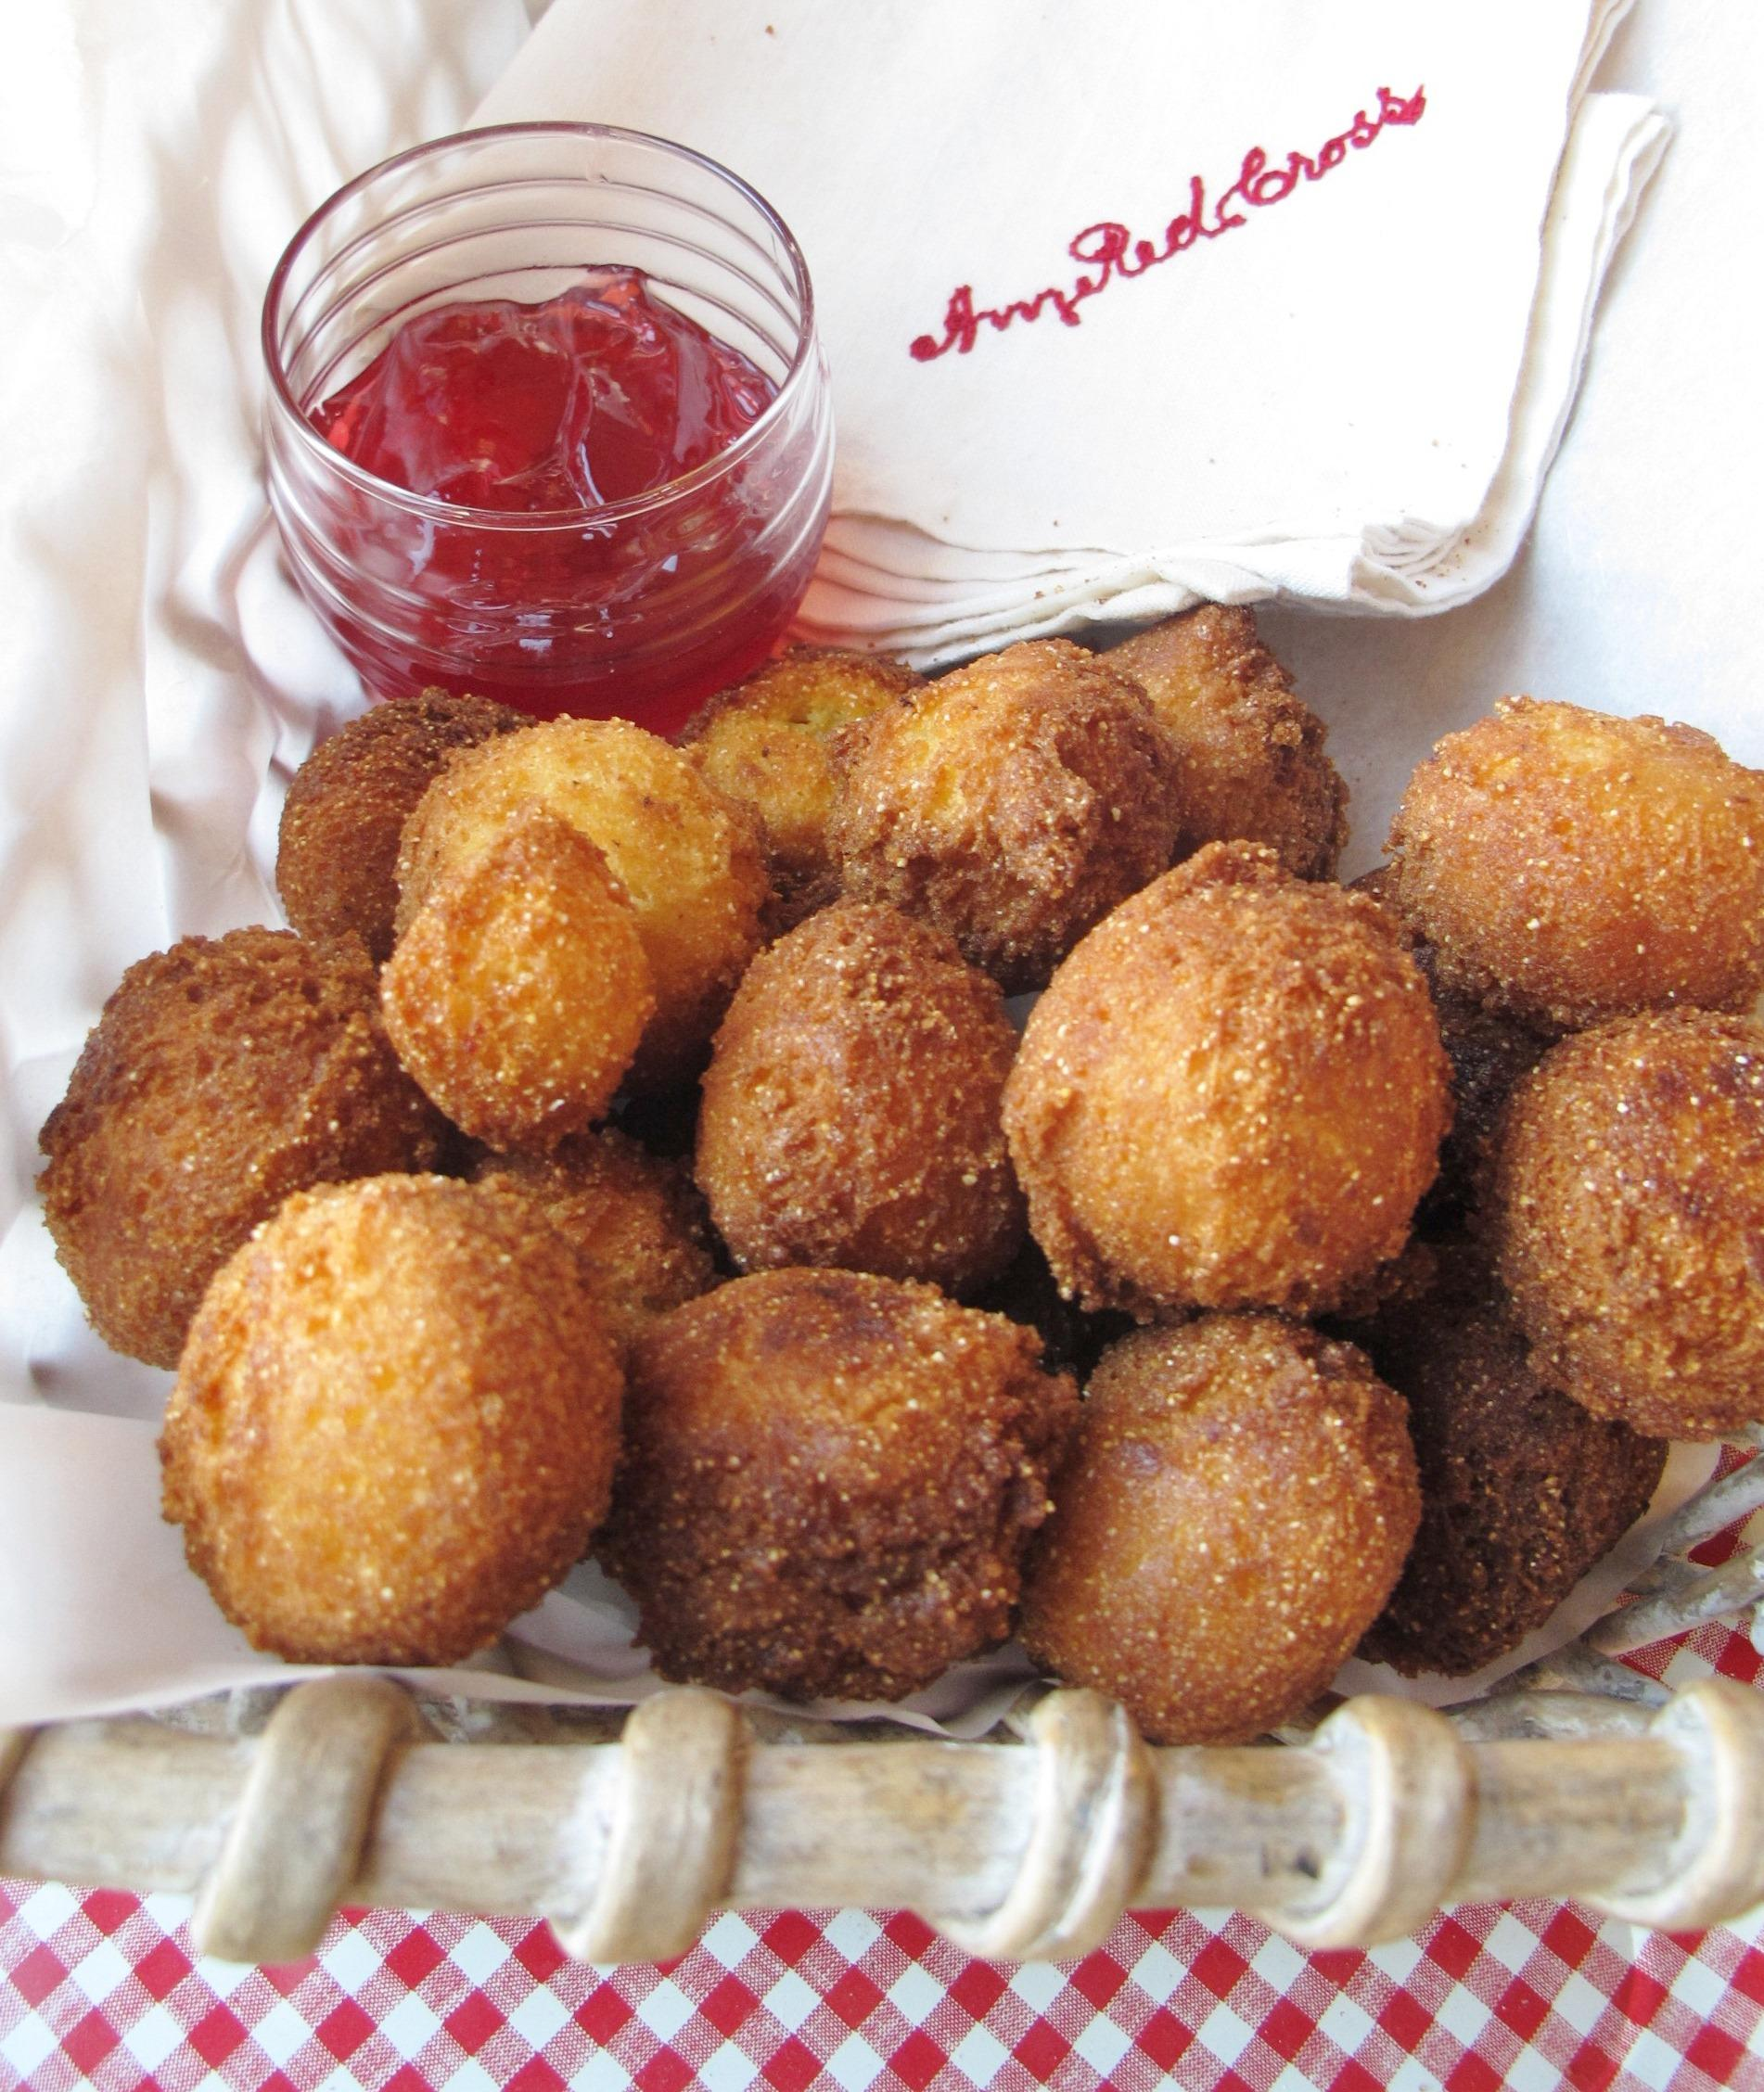 Hushpuppies with Raspberry Habanero Jelly (Stainbrook)